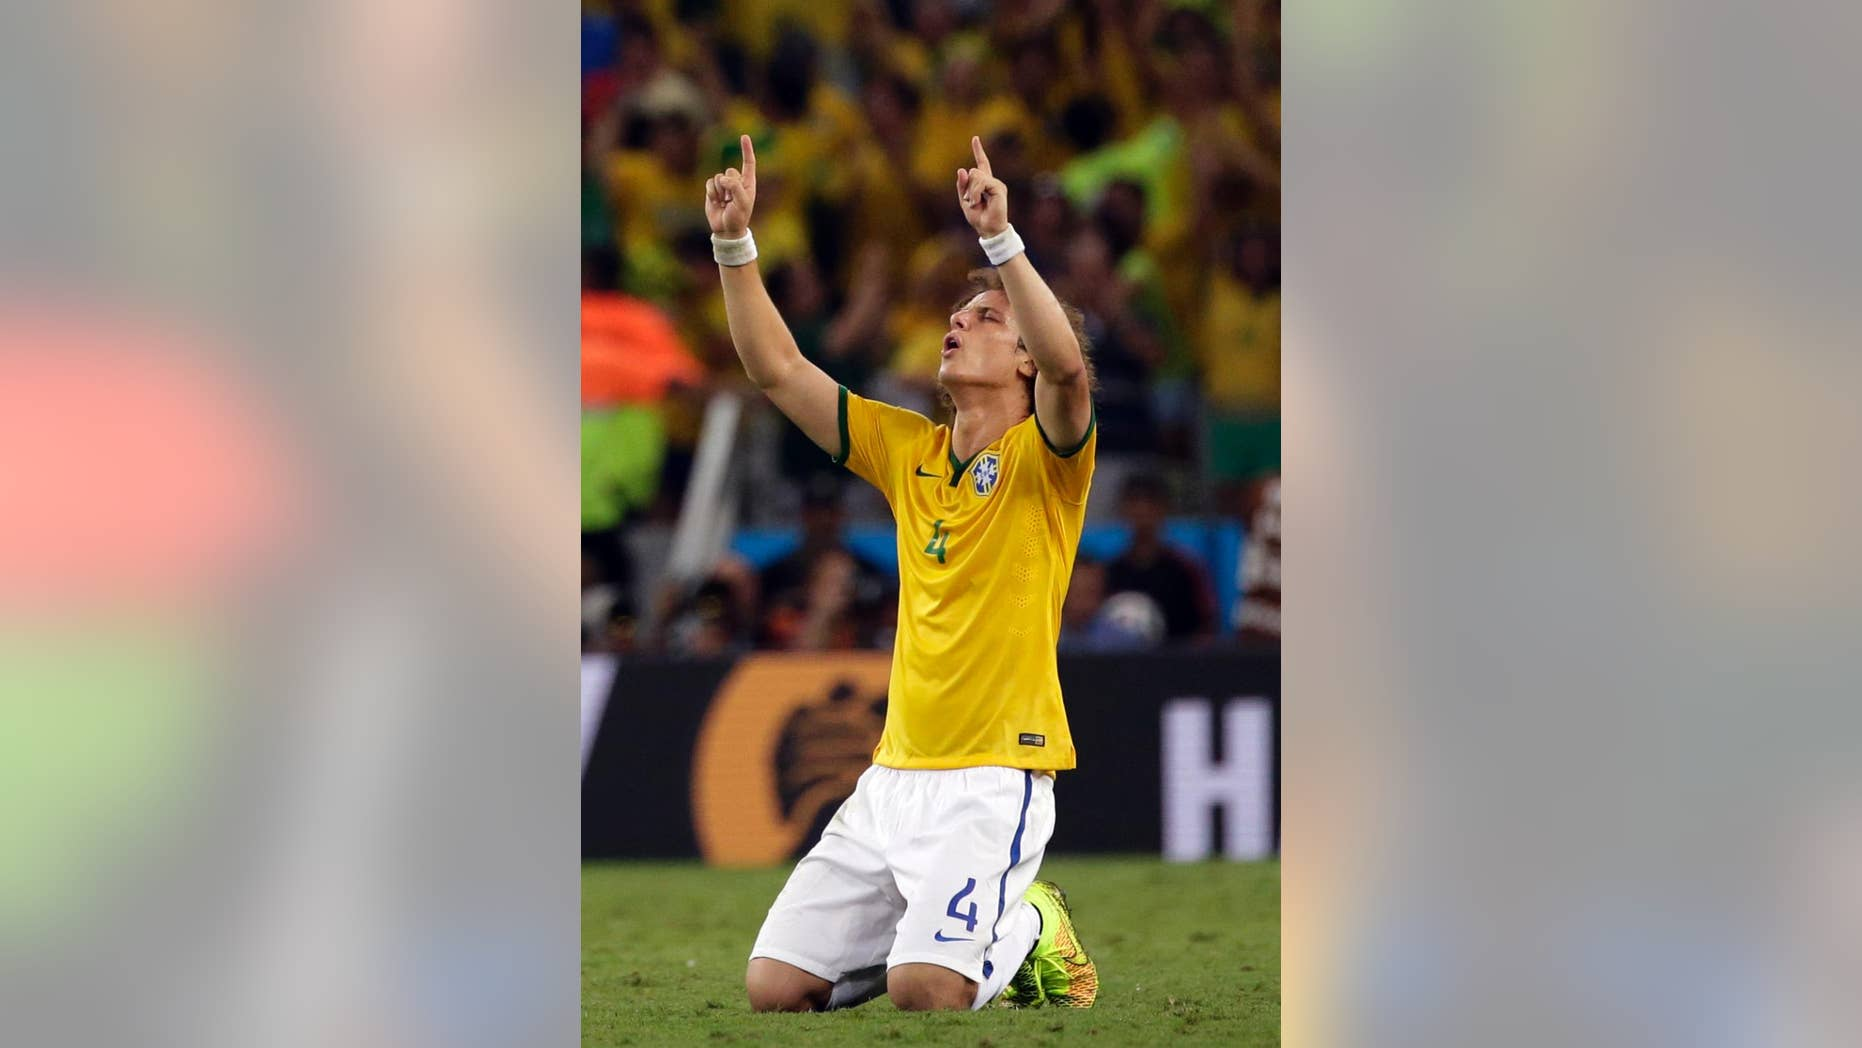 Brazil's David Luiz celebrates at the end of the World Cup quarterfinal soccer match between Brazil and Colombia at the Arena Castelao in Fortaleza, Brazil, Friday, July 4, 2014. Brazil won the match 2-1. (AP Photo/Felipe Dana)